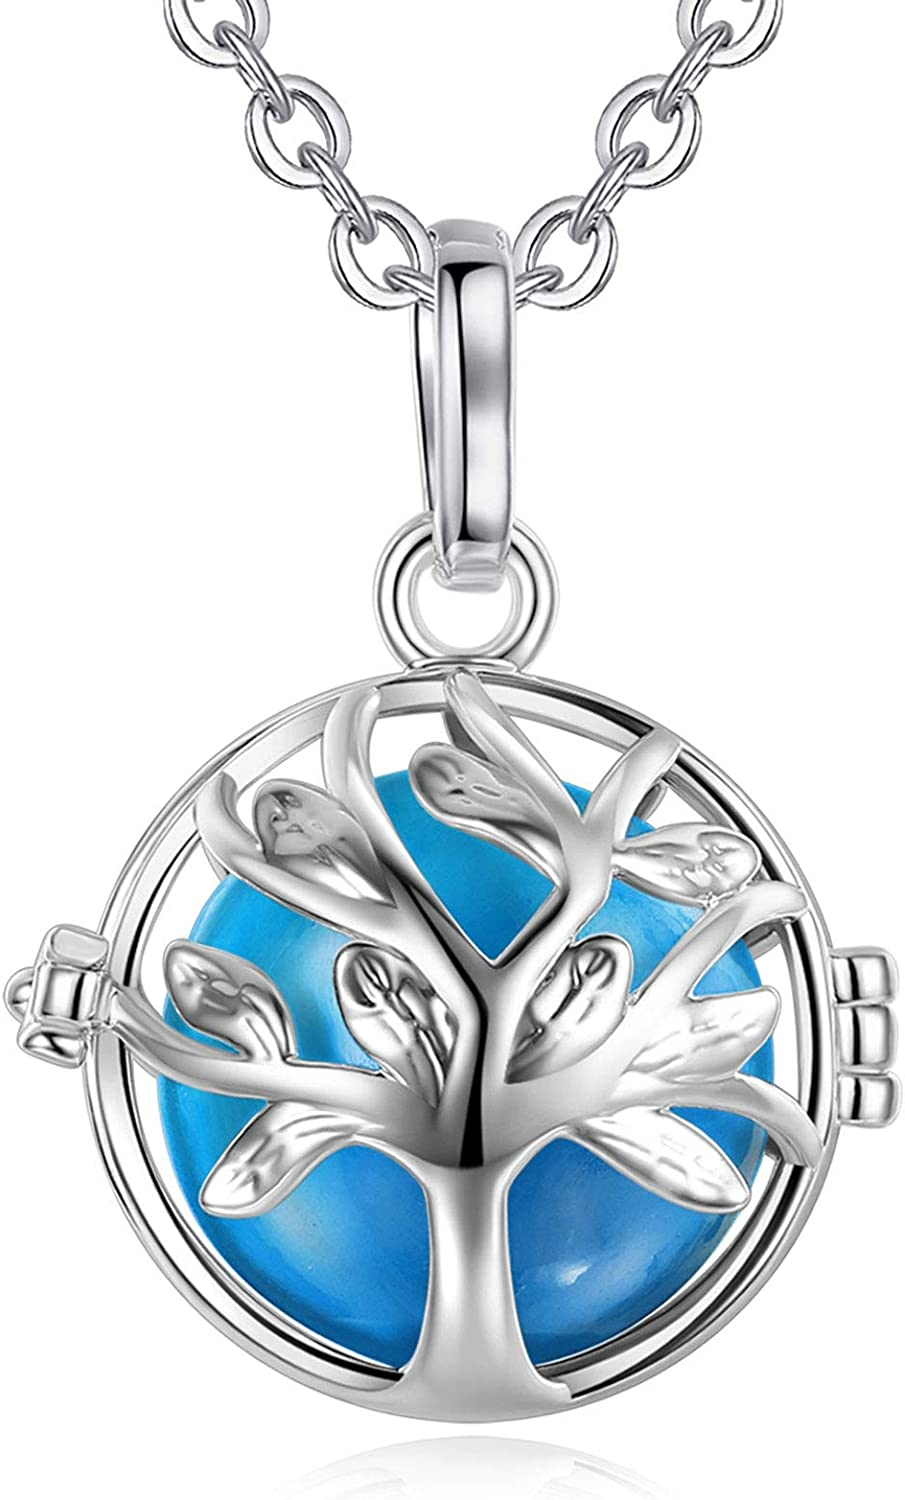 EUDORA A surprise price is realized Harmony Bola Necklace Tree of Wis National products Pendant 18mm Life Chime